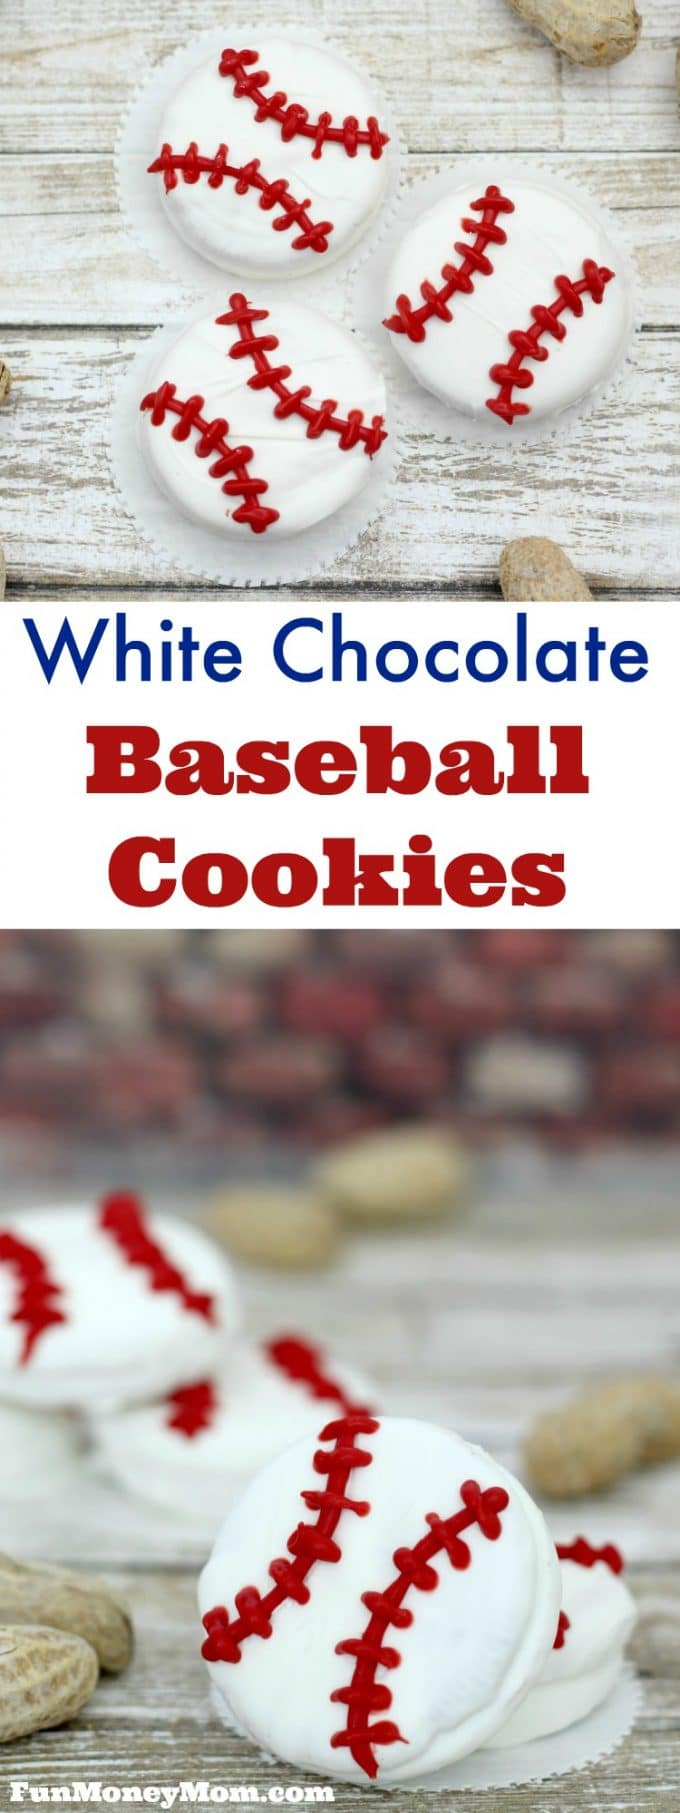 These white chocolate baseball cookies are perfect for your sports themed party, little league game or just a fun treat to enjoy while watching the game!